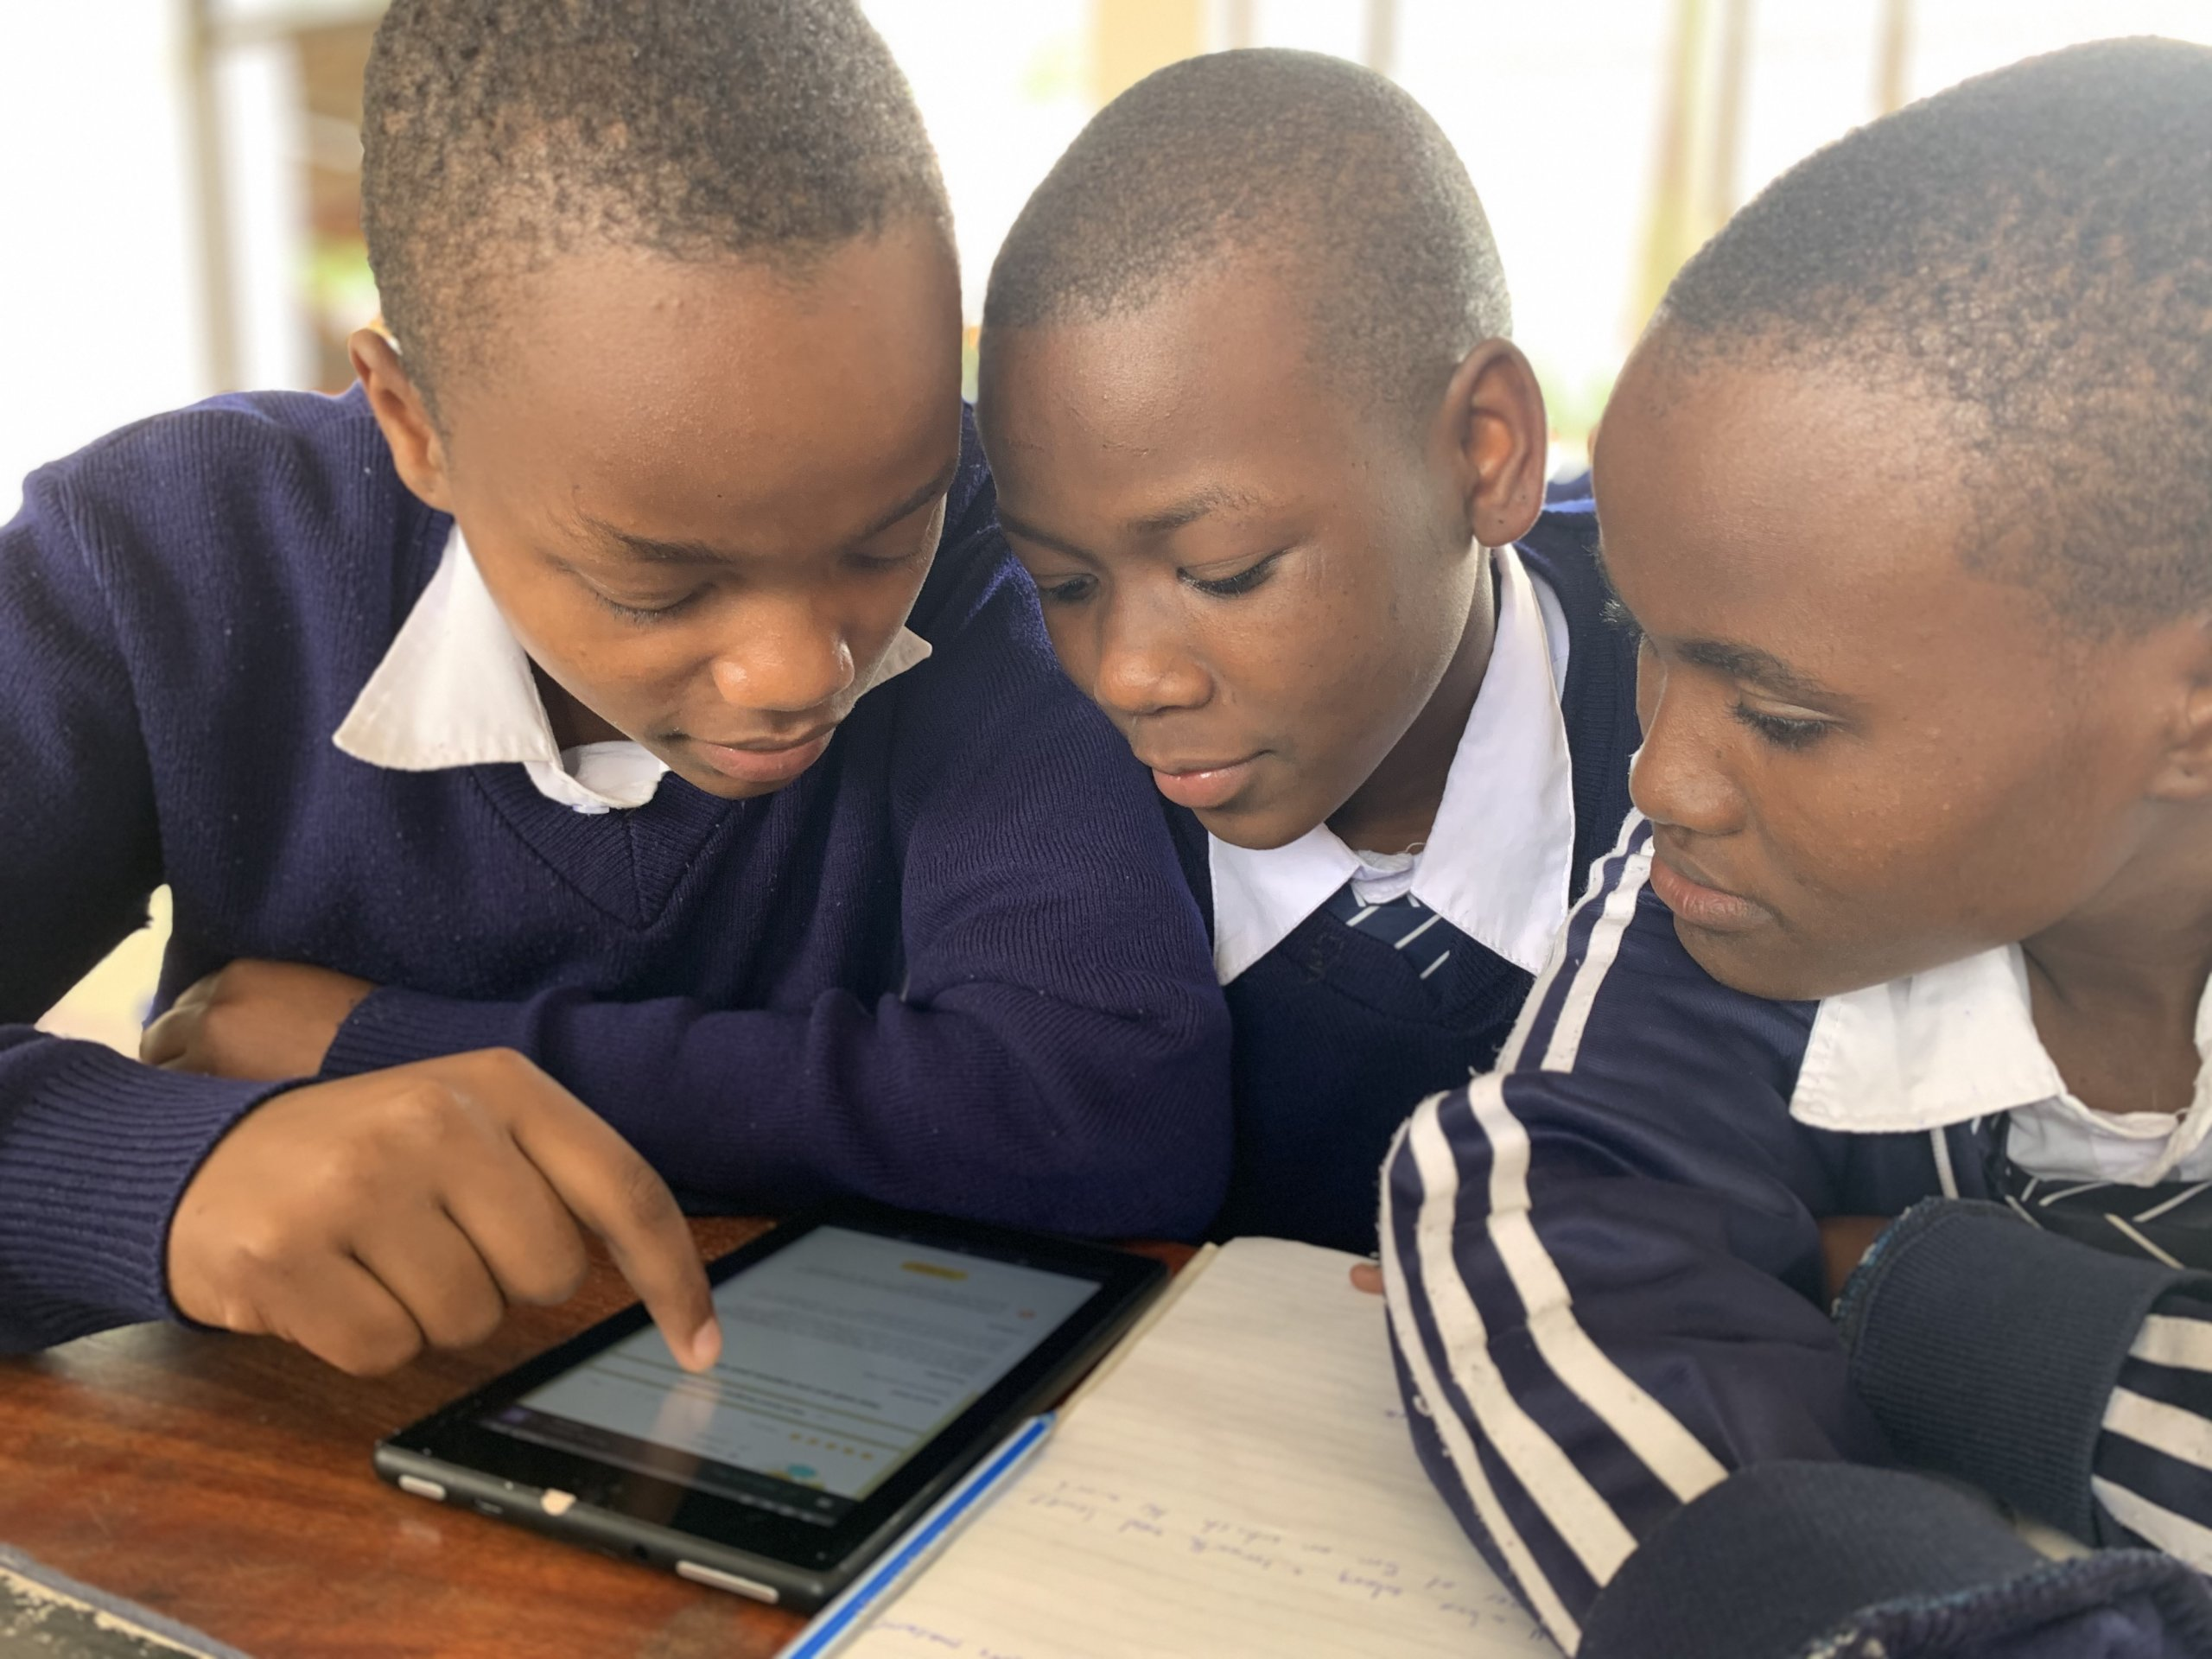 Three students gather around a tablet to read what's on the screen. The student on the left hand side points to something on the screen with his index finger.